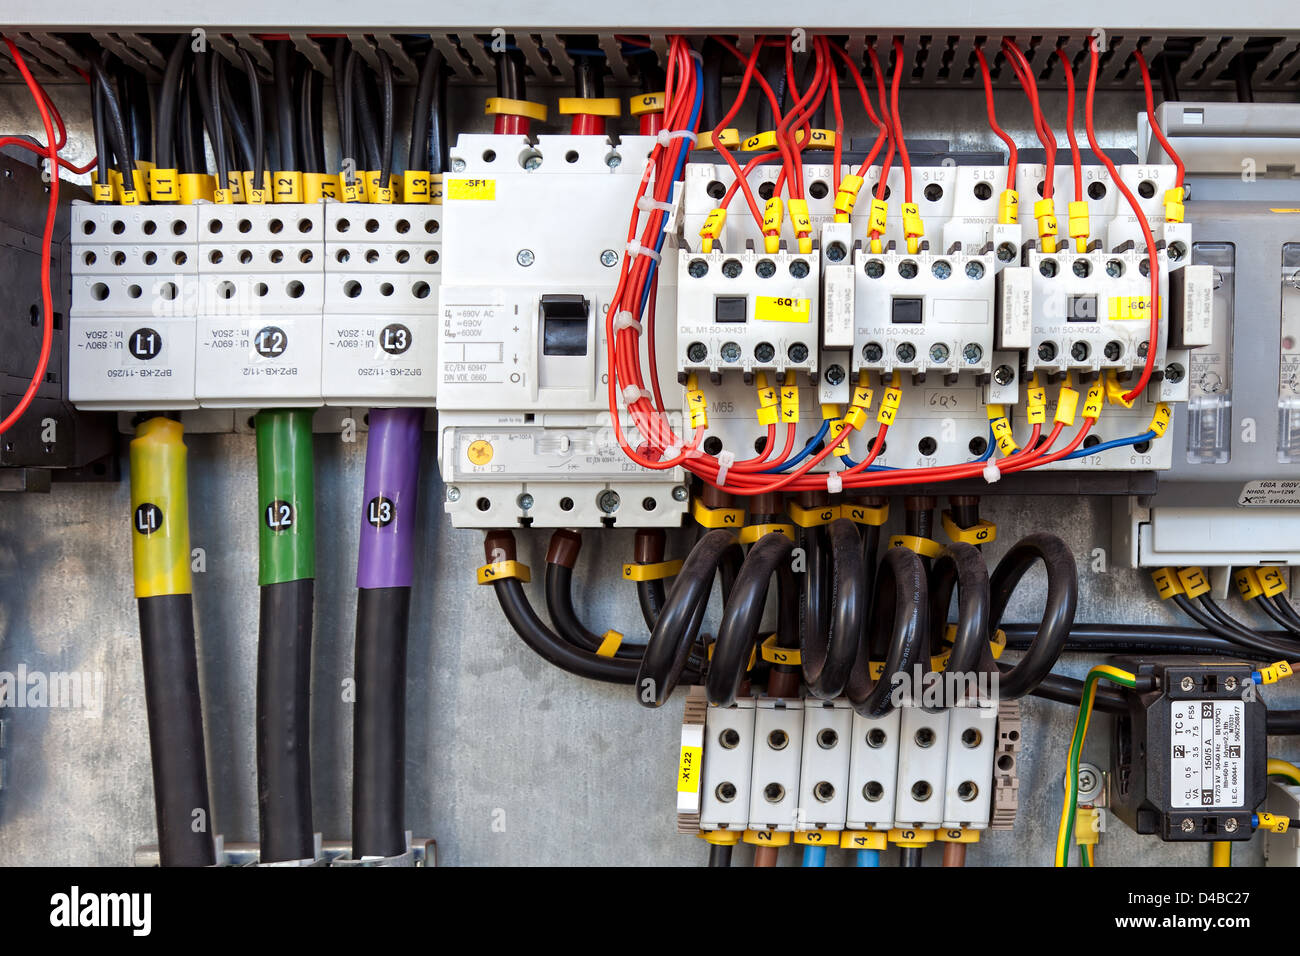 electrical panel with fuses and contactors  - stock image